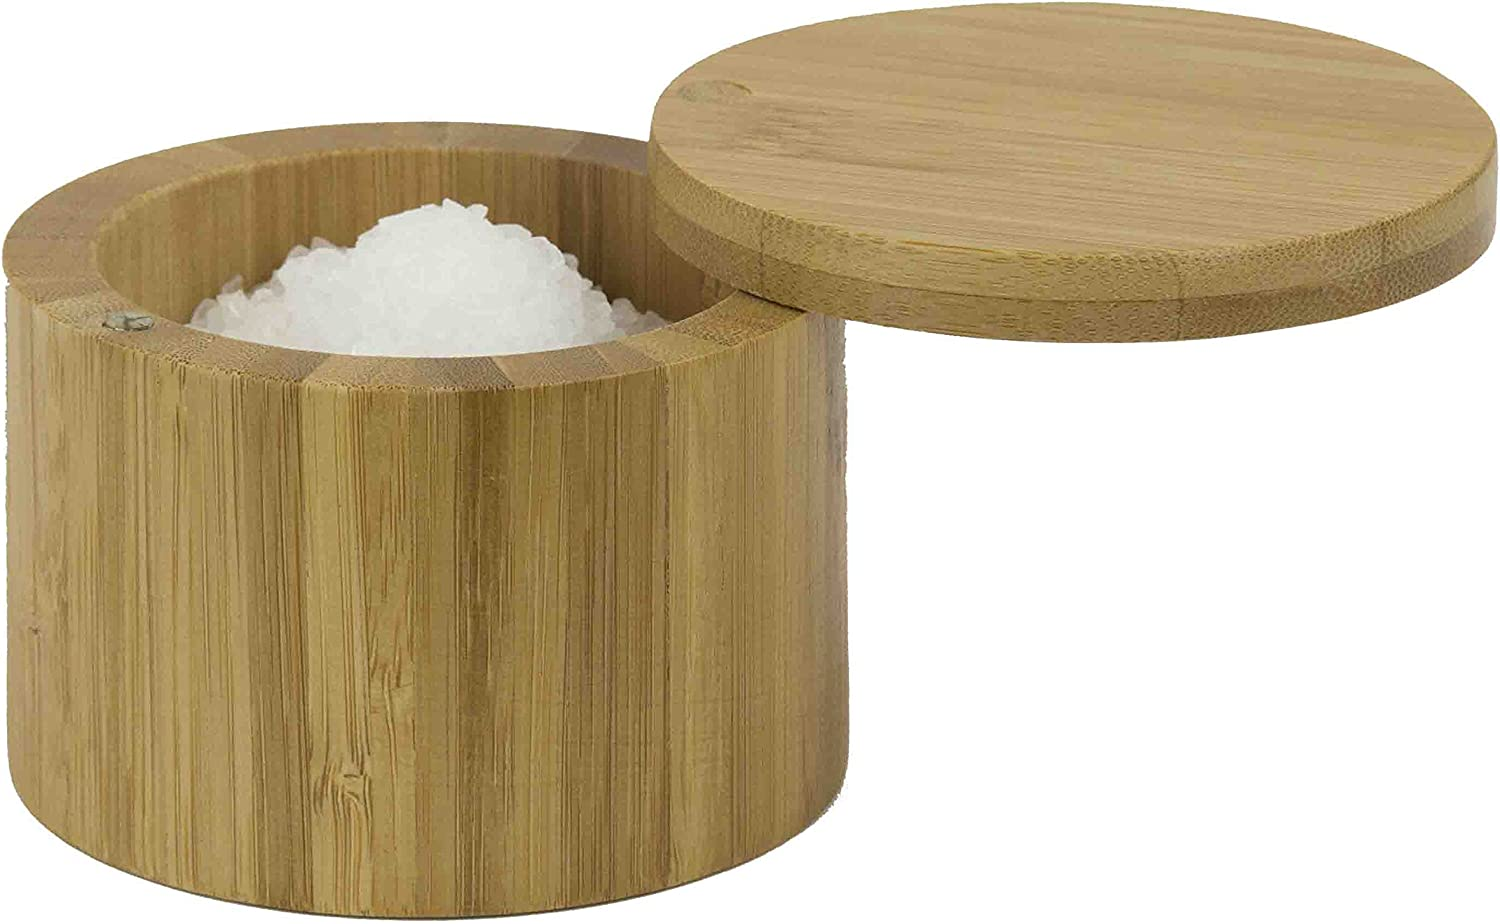 Home Basics Bamboo Swivel Salt Box with Magnetic Lid, Natural Honey (1 Tier)